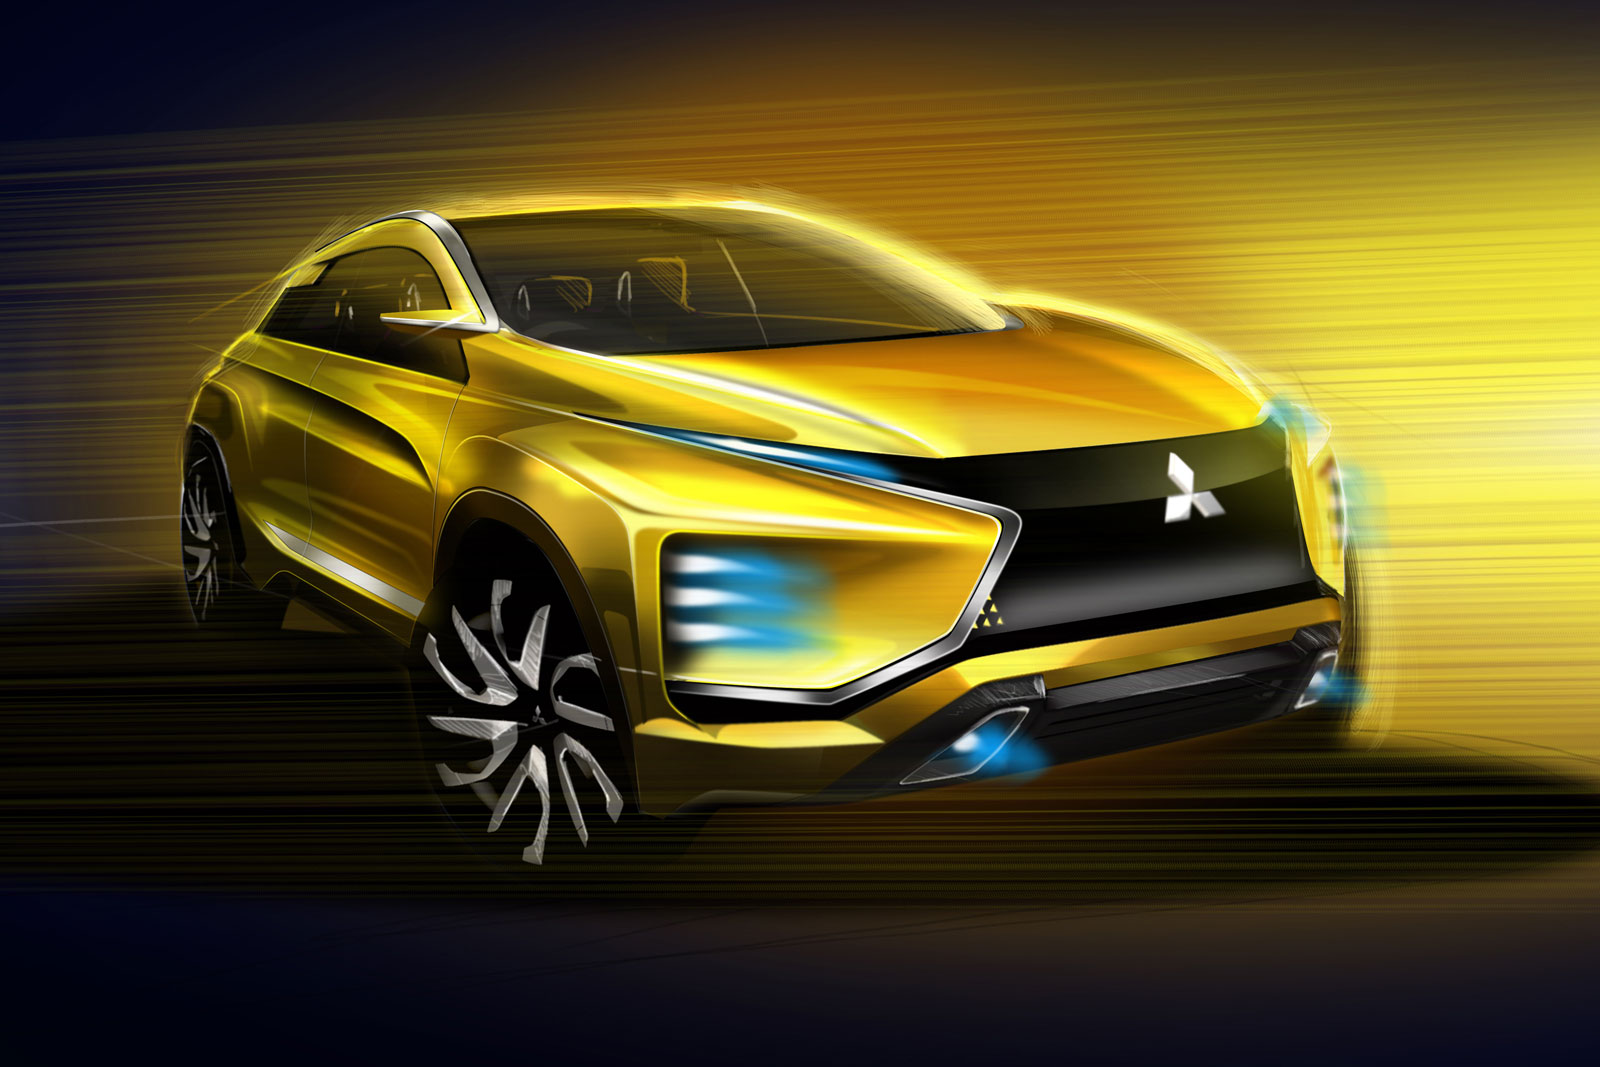 Mitsubishi eX Concept Design Sketch Render - Car Body Design